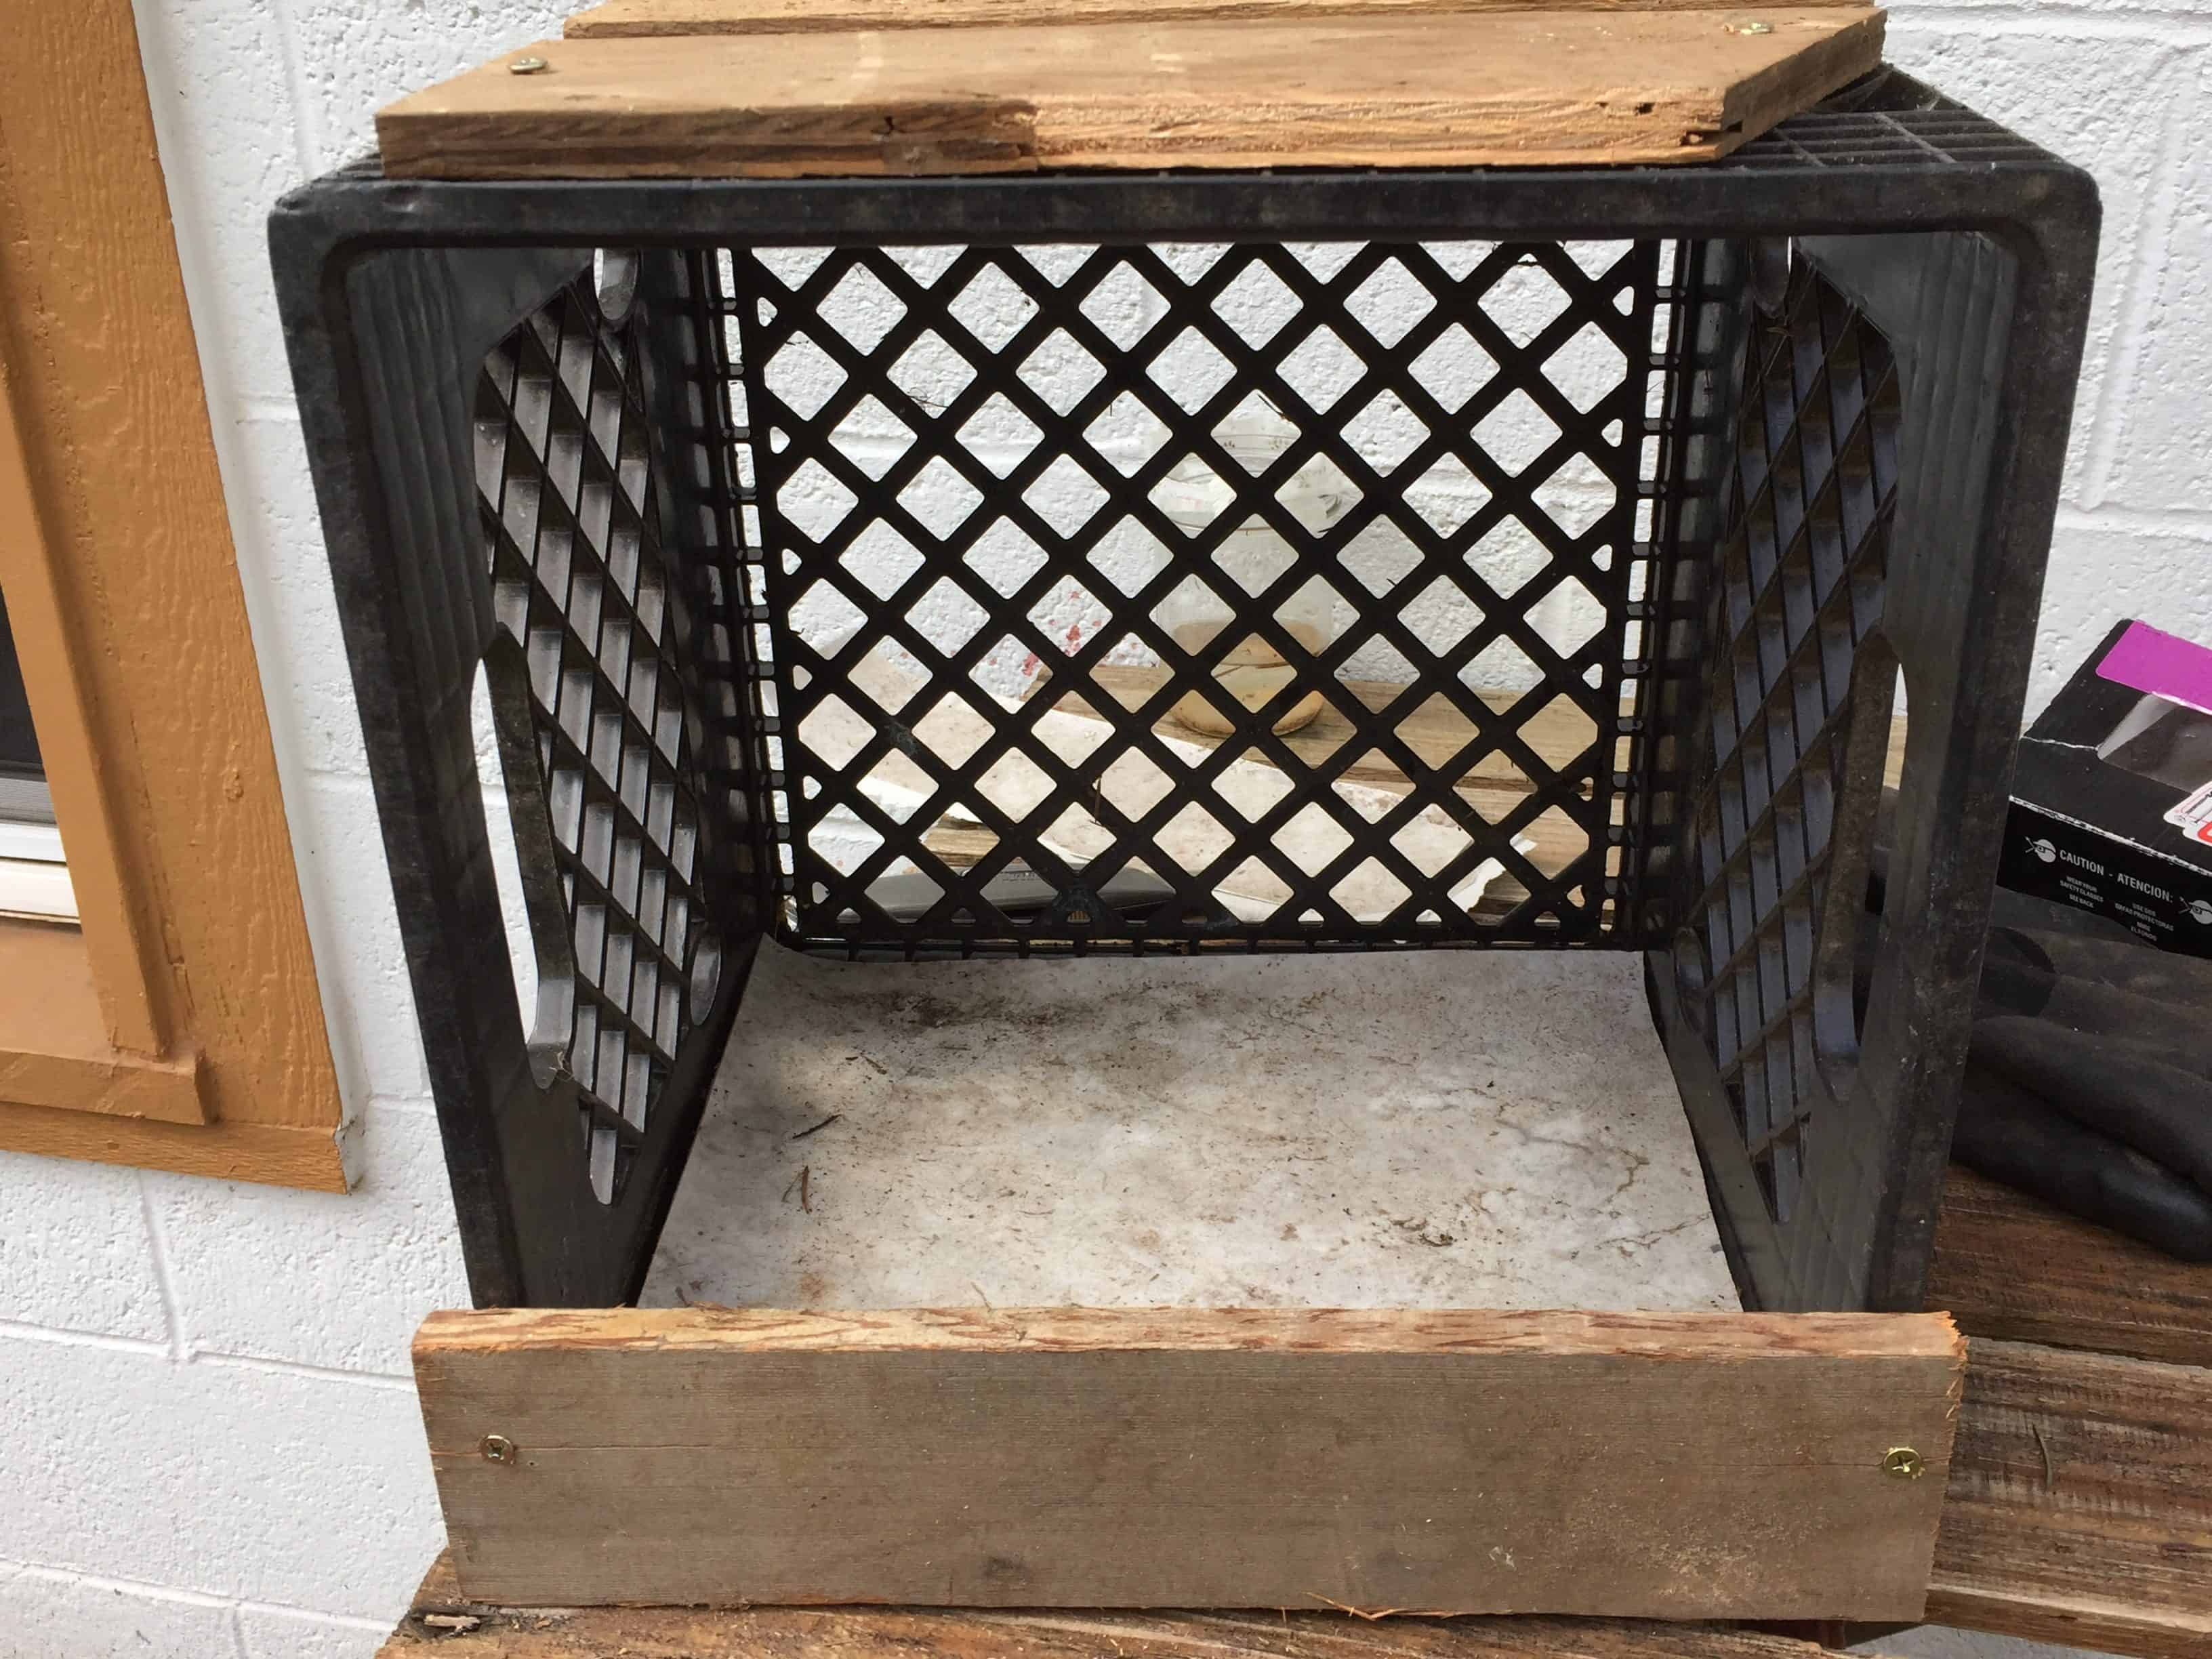 Make a nest box out of a milk crate in just a few minutes and a few scraps!